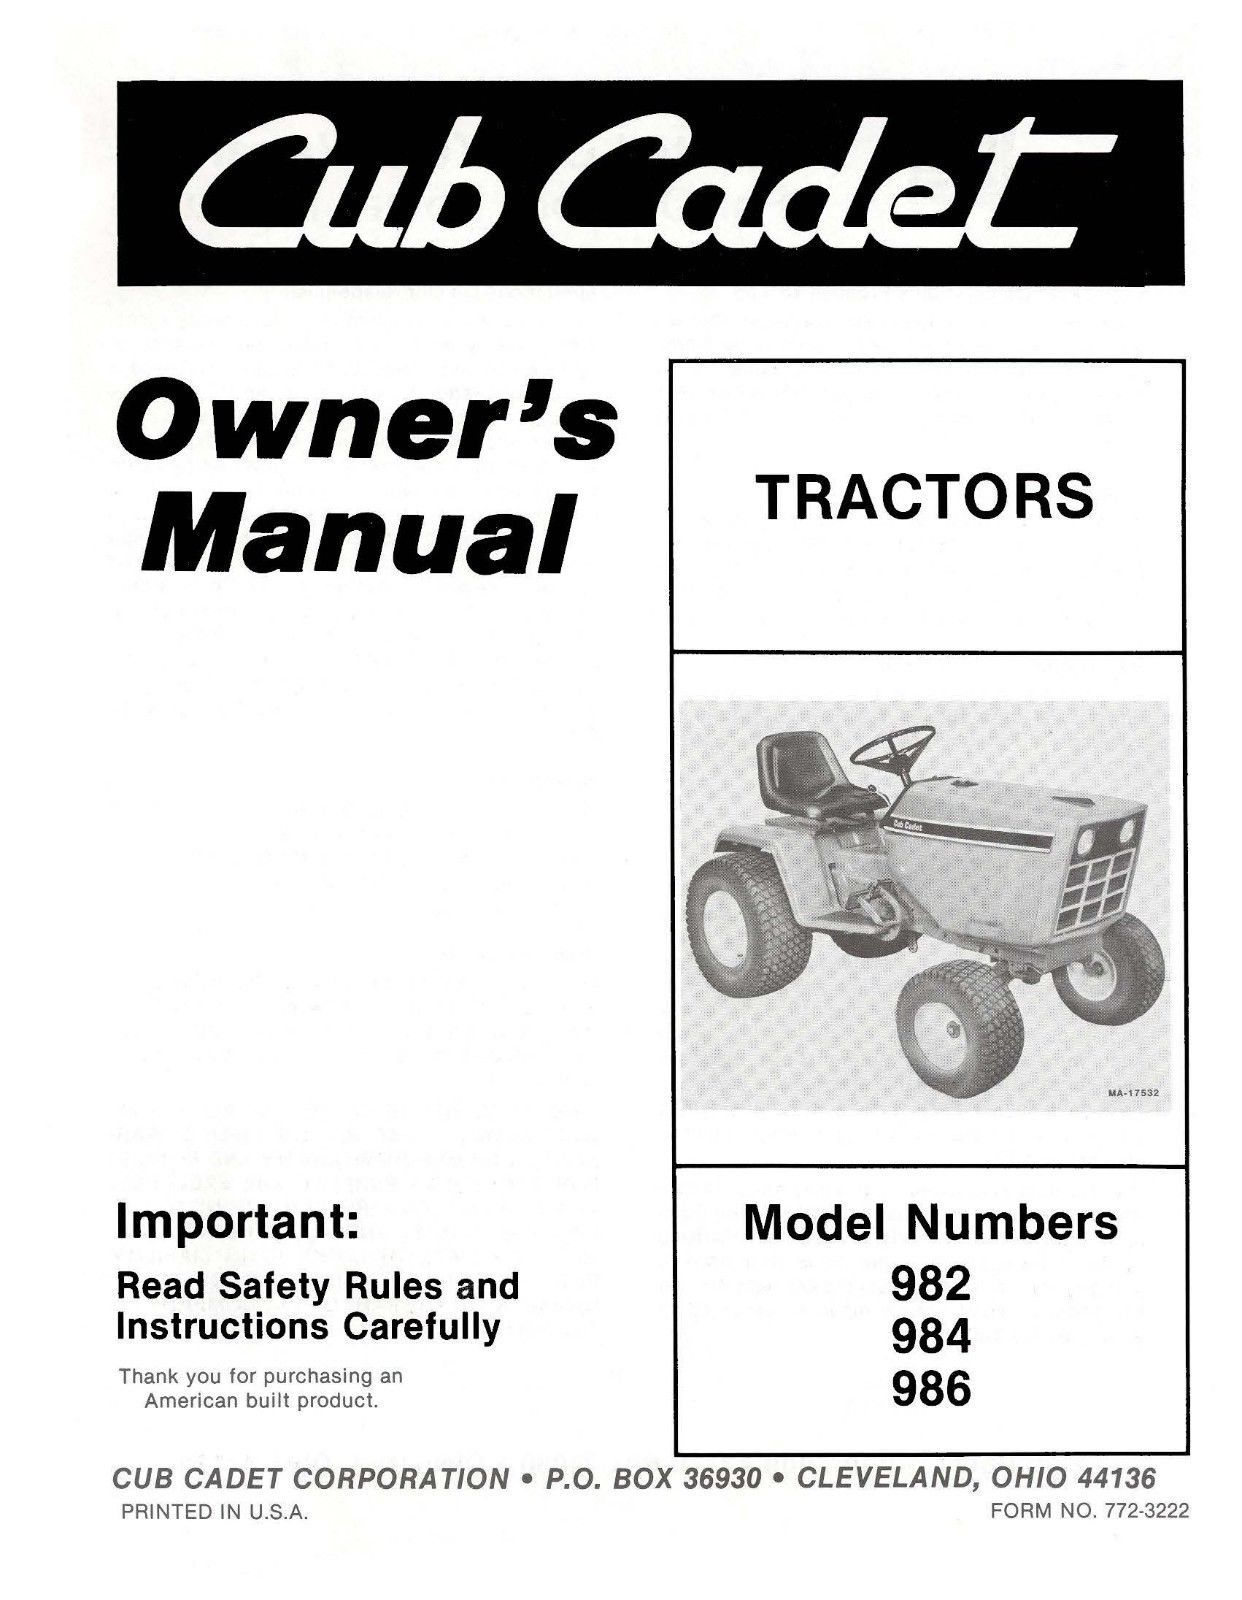 Cub Cadet Lawn Tractor Owners Manual Model and 50 similar items. 57